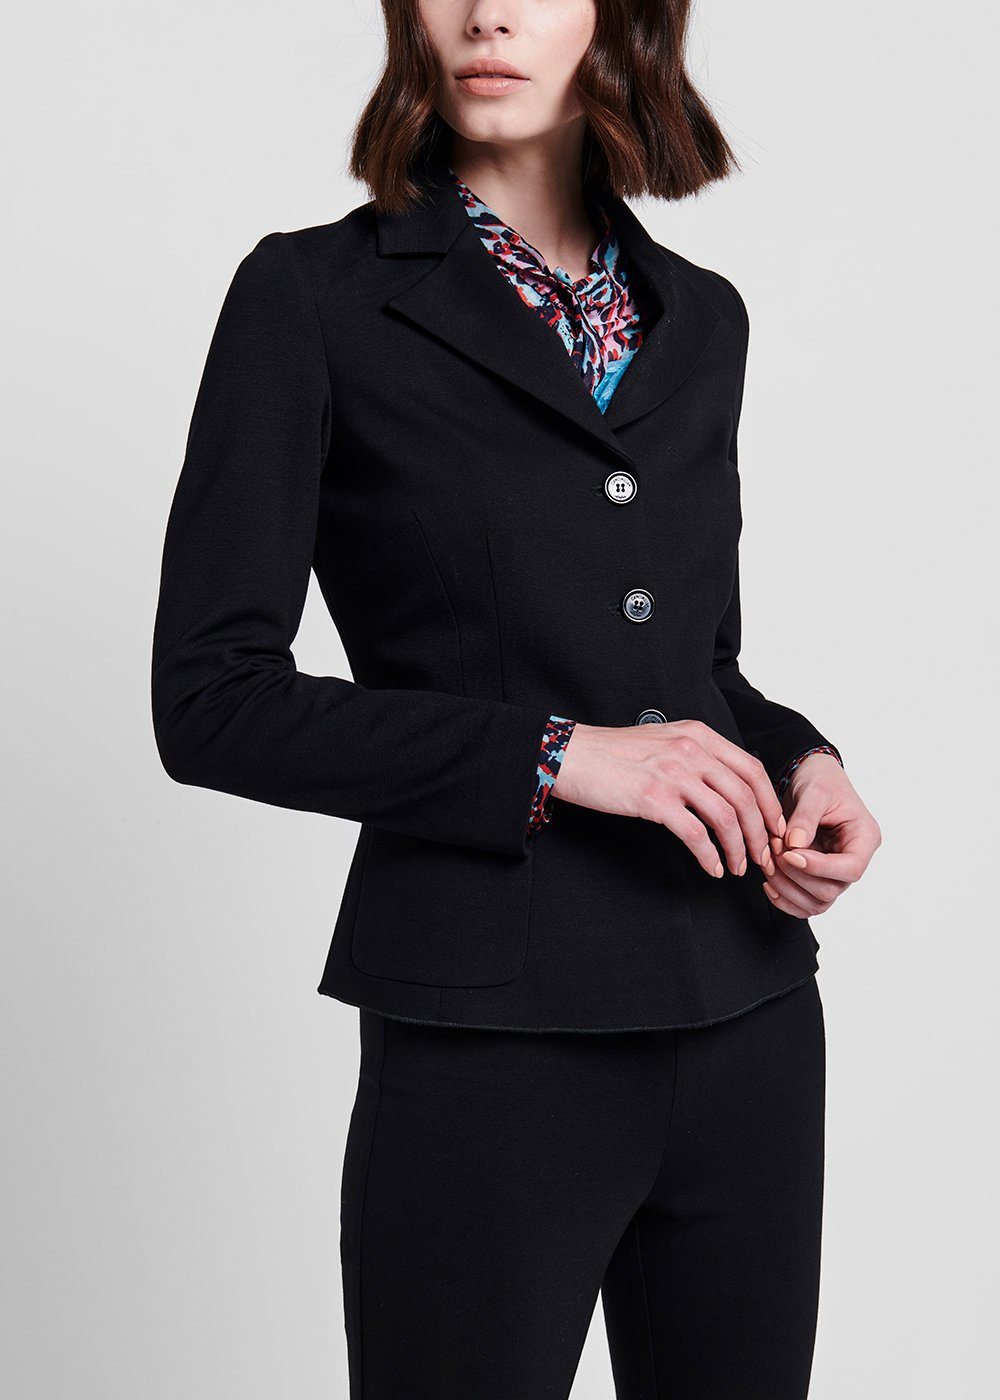 Jacket in milano stitch with 3 buttons - Black - Woman